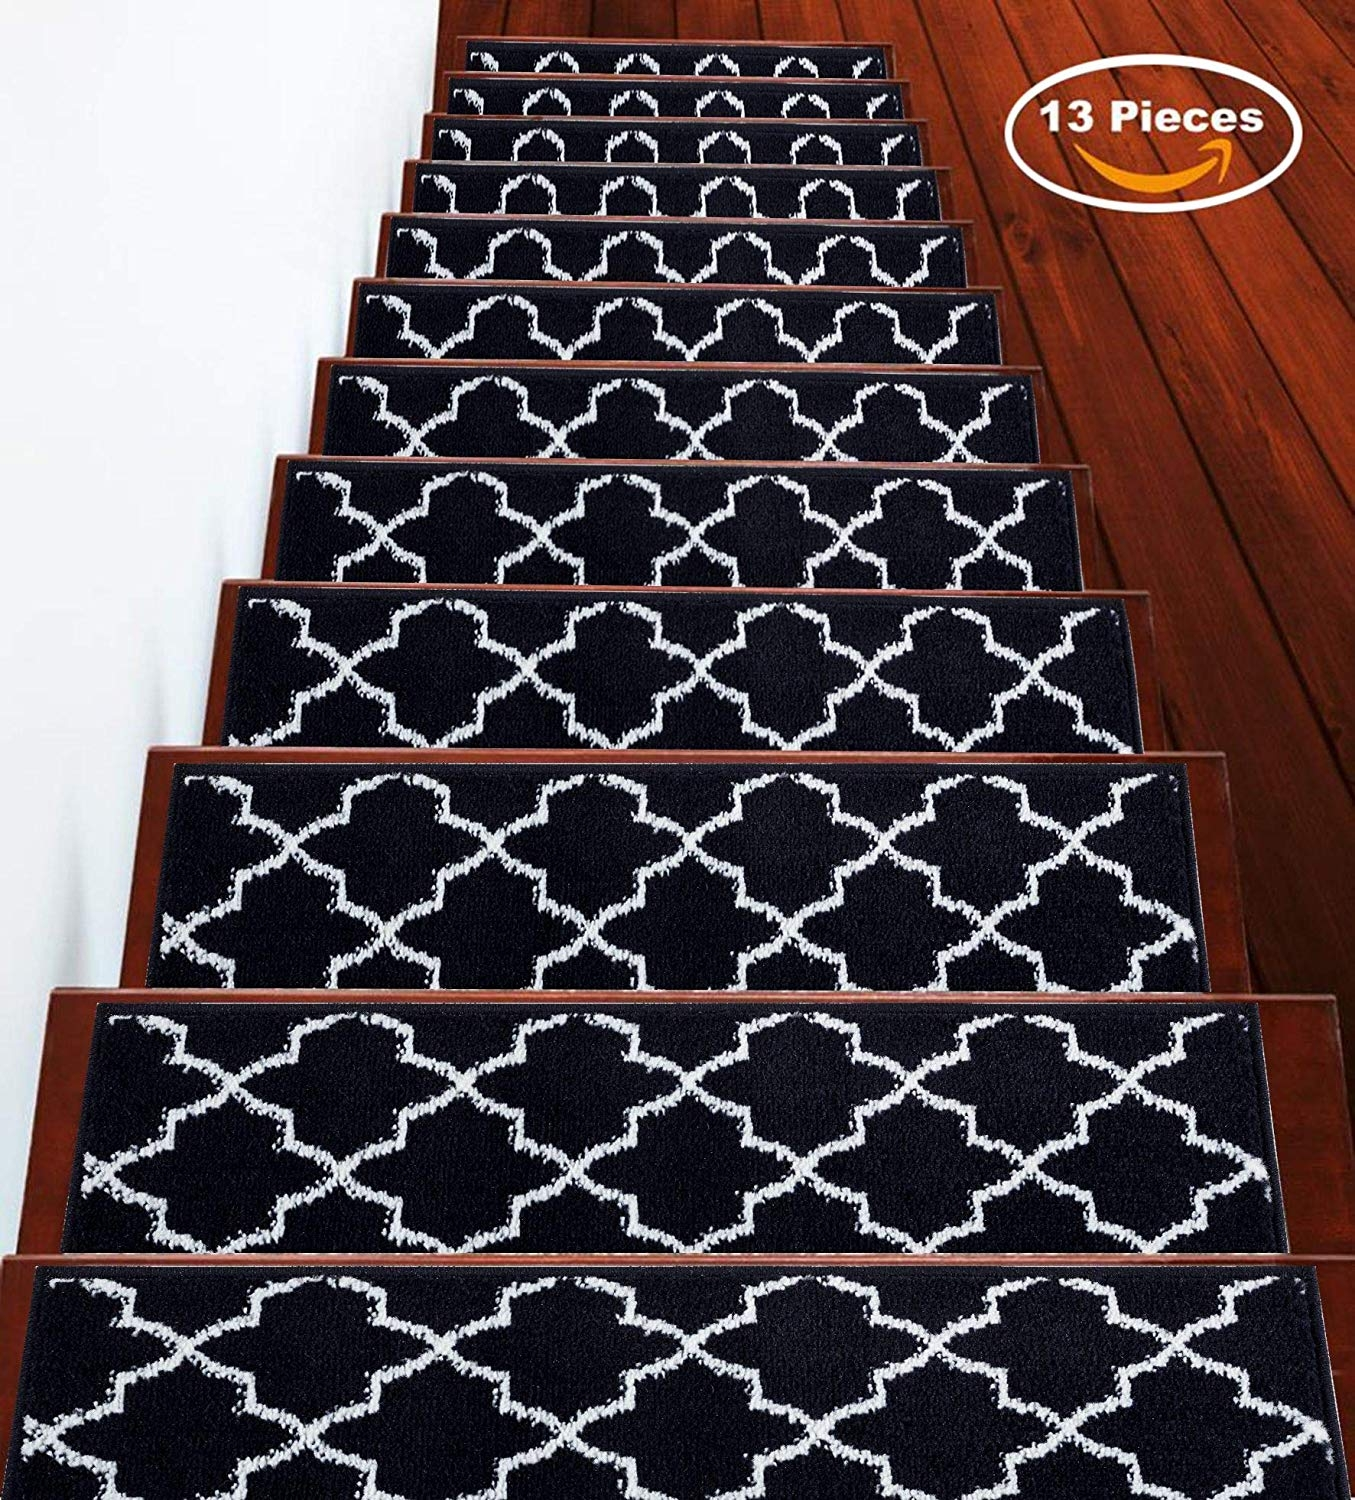 Sussexhome 7 Set Stair Treads Stairs Slide Carpet Stair Tread   Durable Carpet For Stairs   High Traffic   Flower Design   Low Pile   Masland   Stair Treads